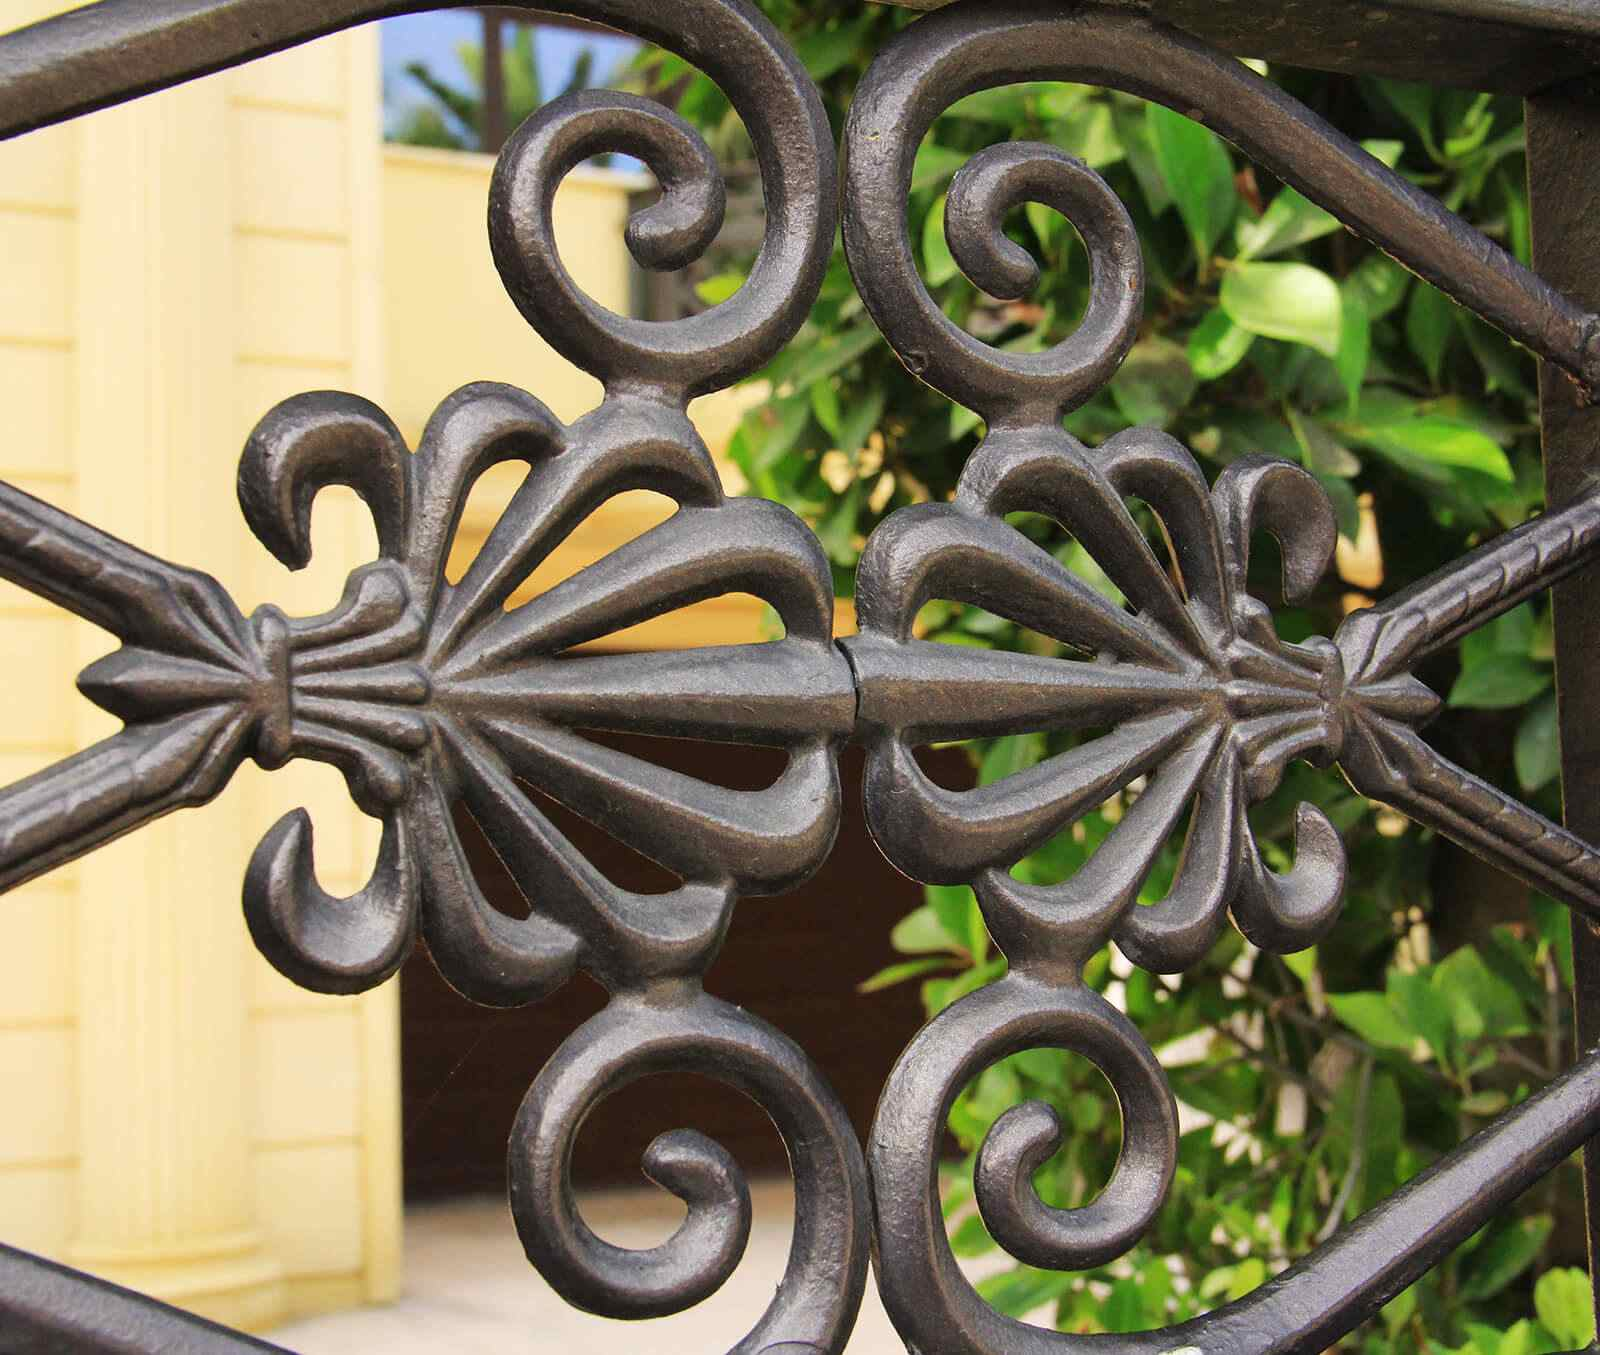 Intricate hand forged wrought iron